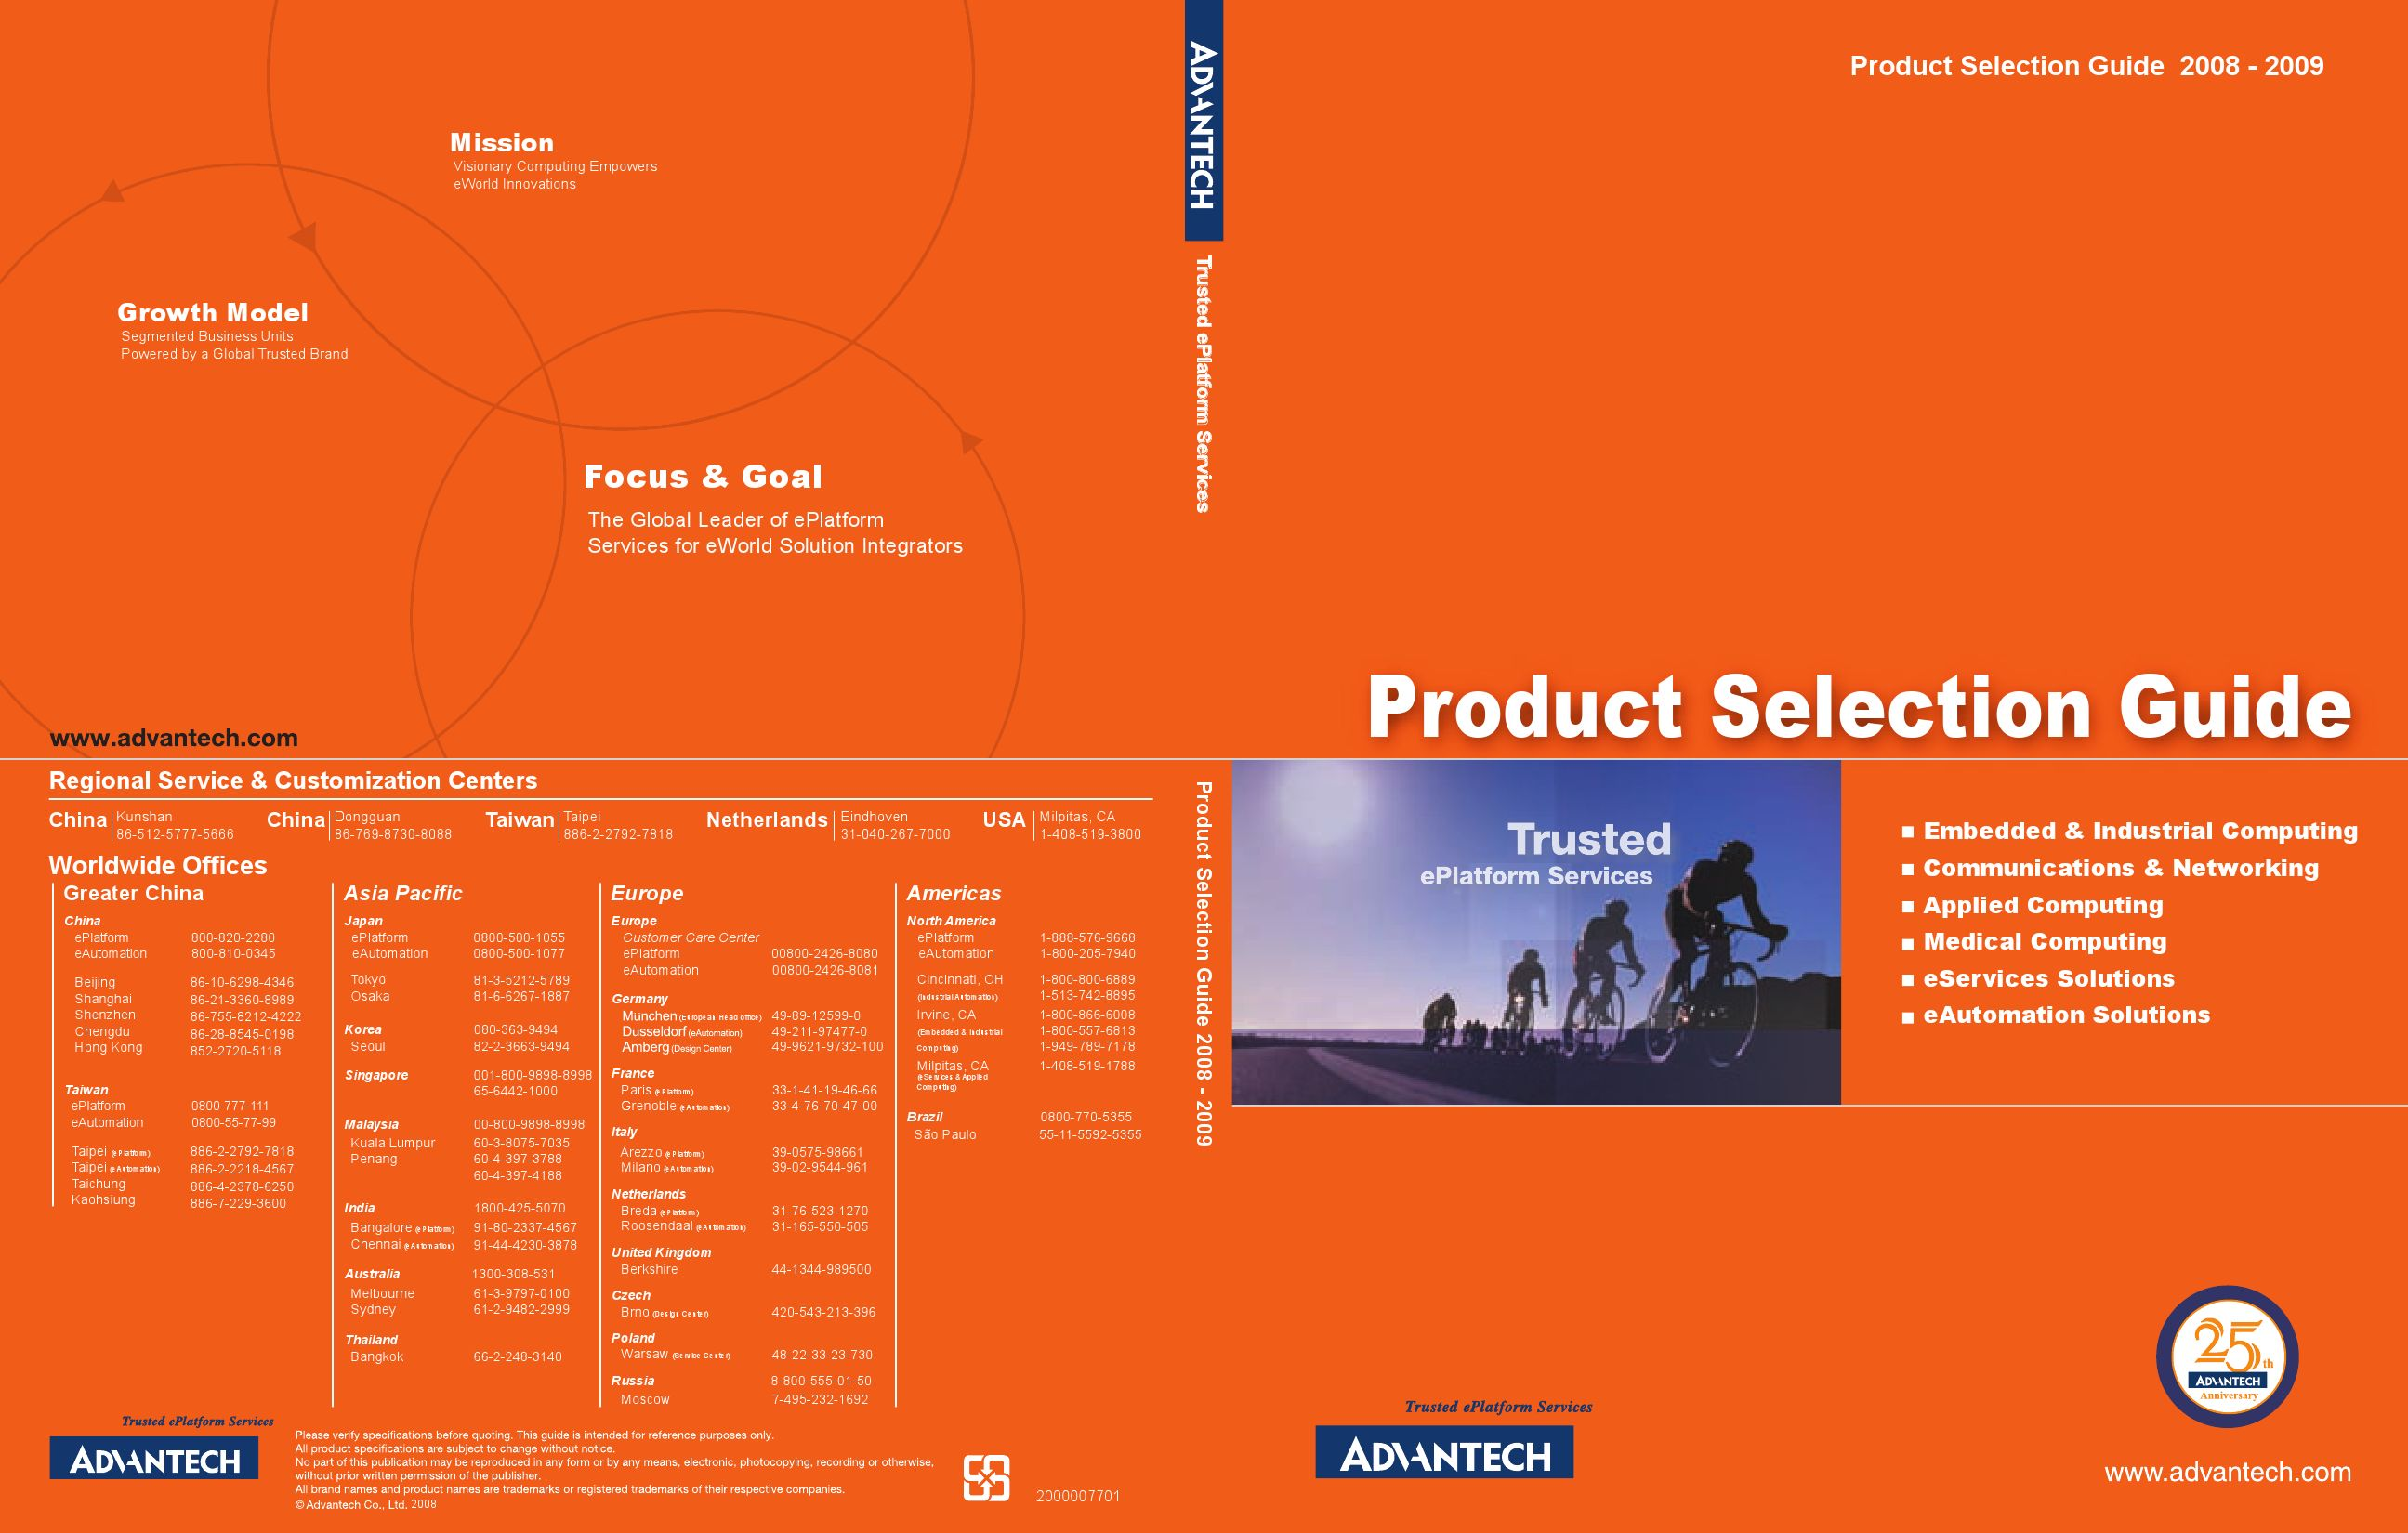 377e727f105 2008-2009 Product Selection Guide by Advantech - issuu